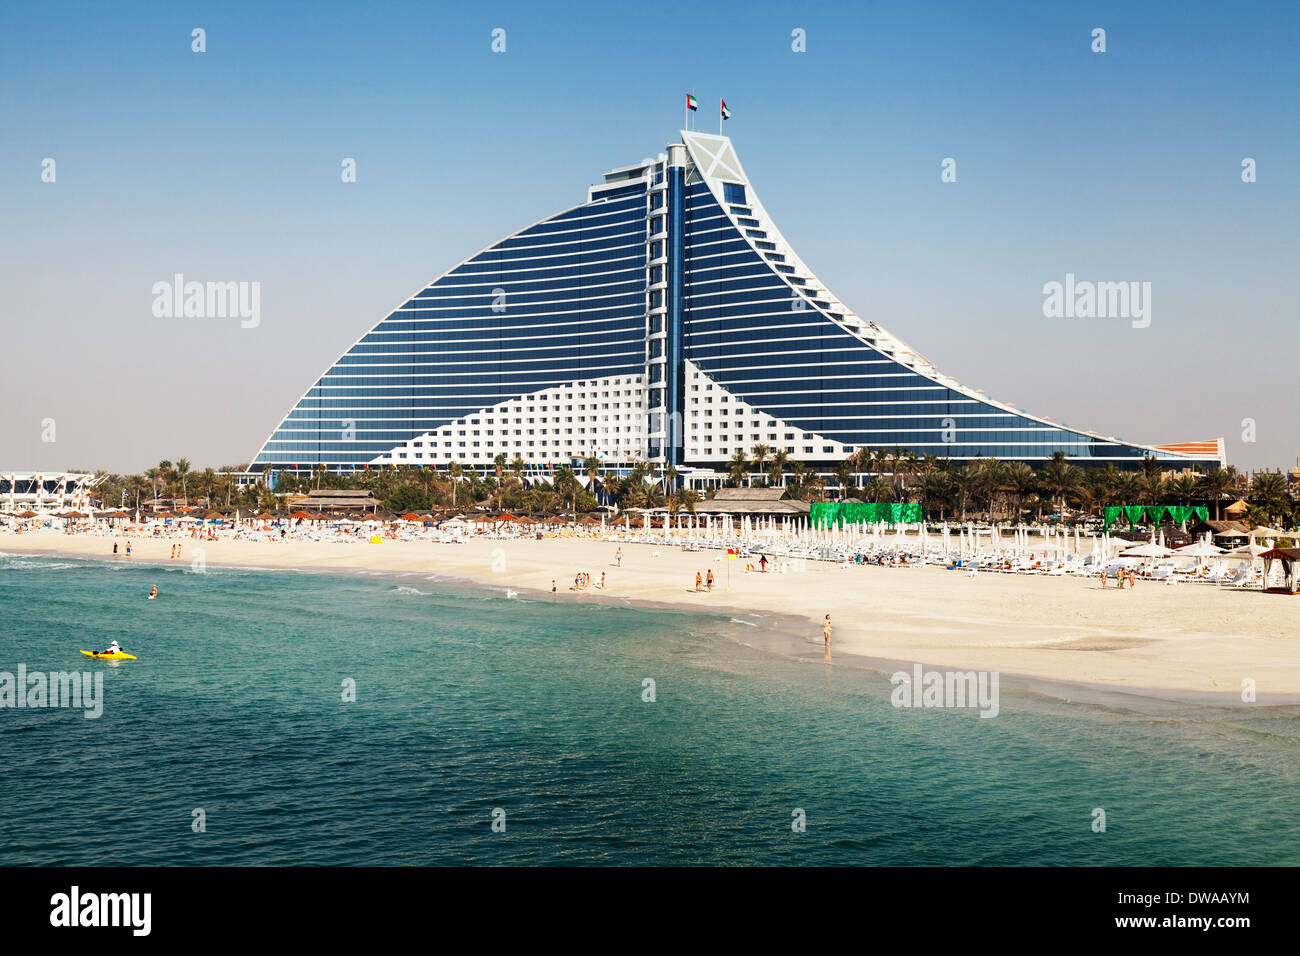 the jumeirah beach hotel dubai a luxury 5 star hotel